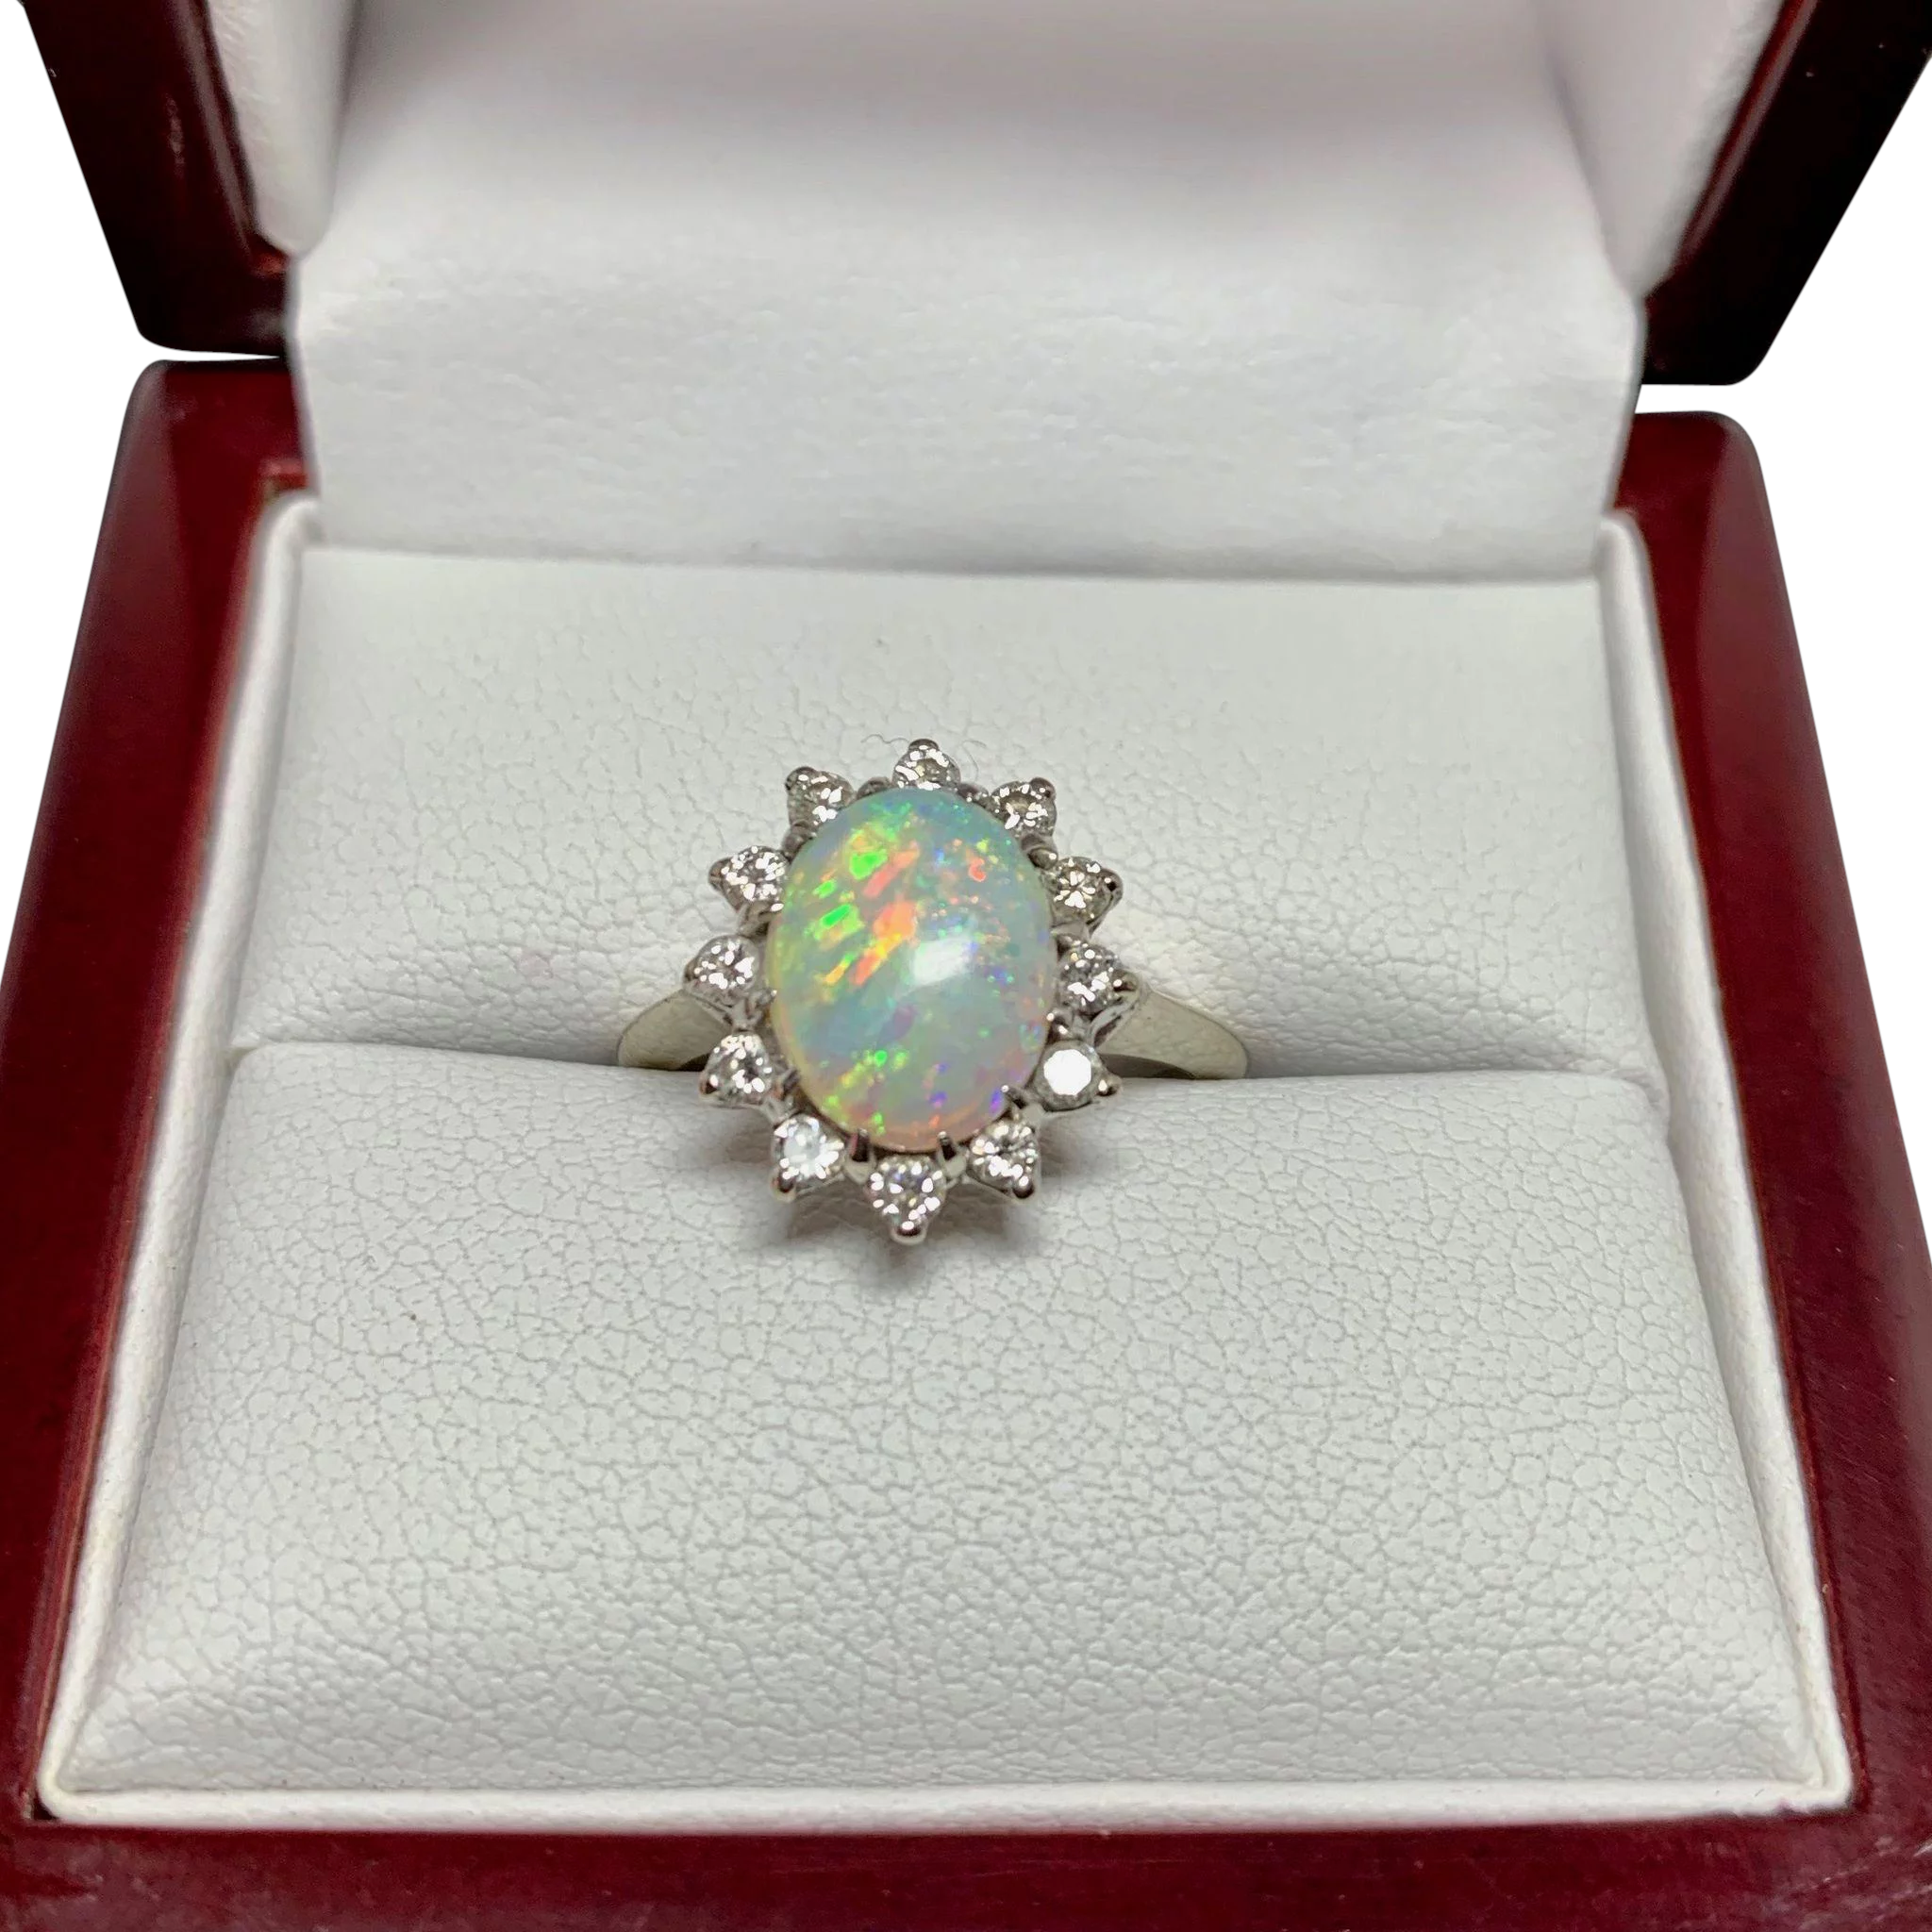 Opal Ring Vintage Opal Ring With Diamond Halo In 10k White Gold Size 6 5 14k White Gold Engagement Rings Topaz Wedding Ring Blue Topaz Wedding